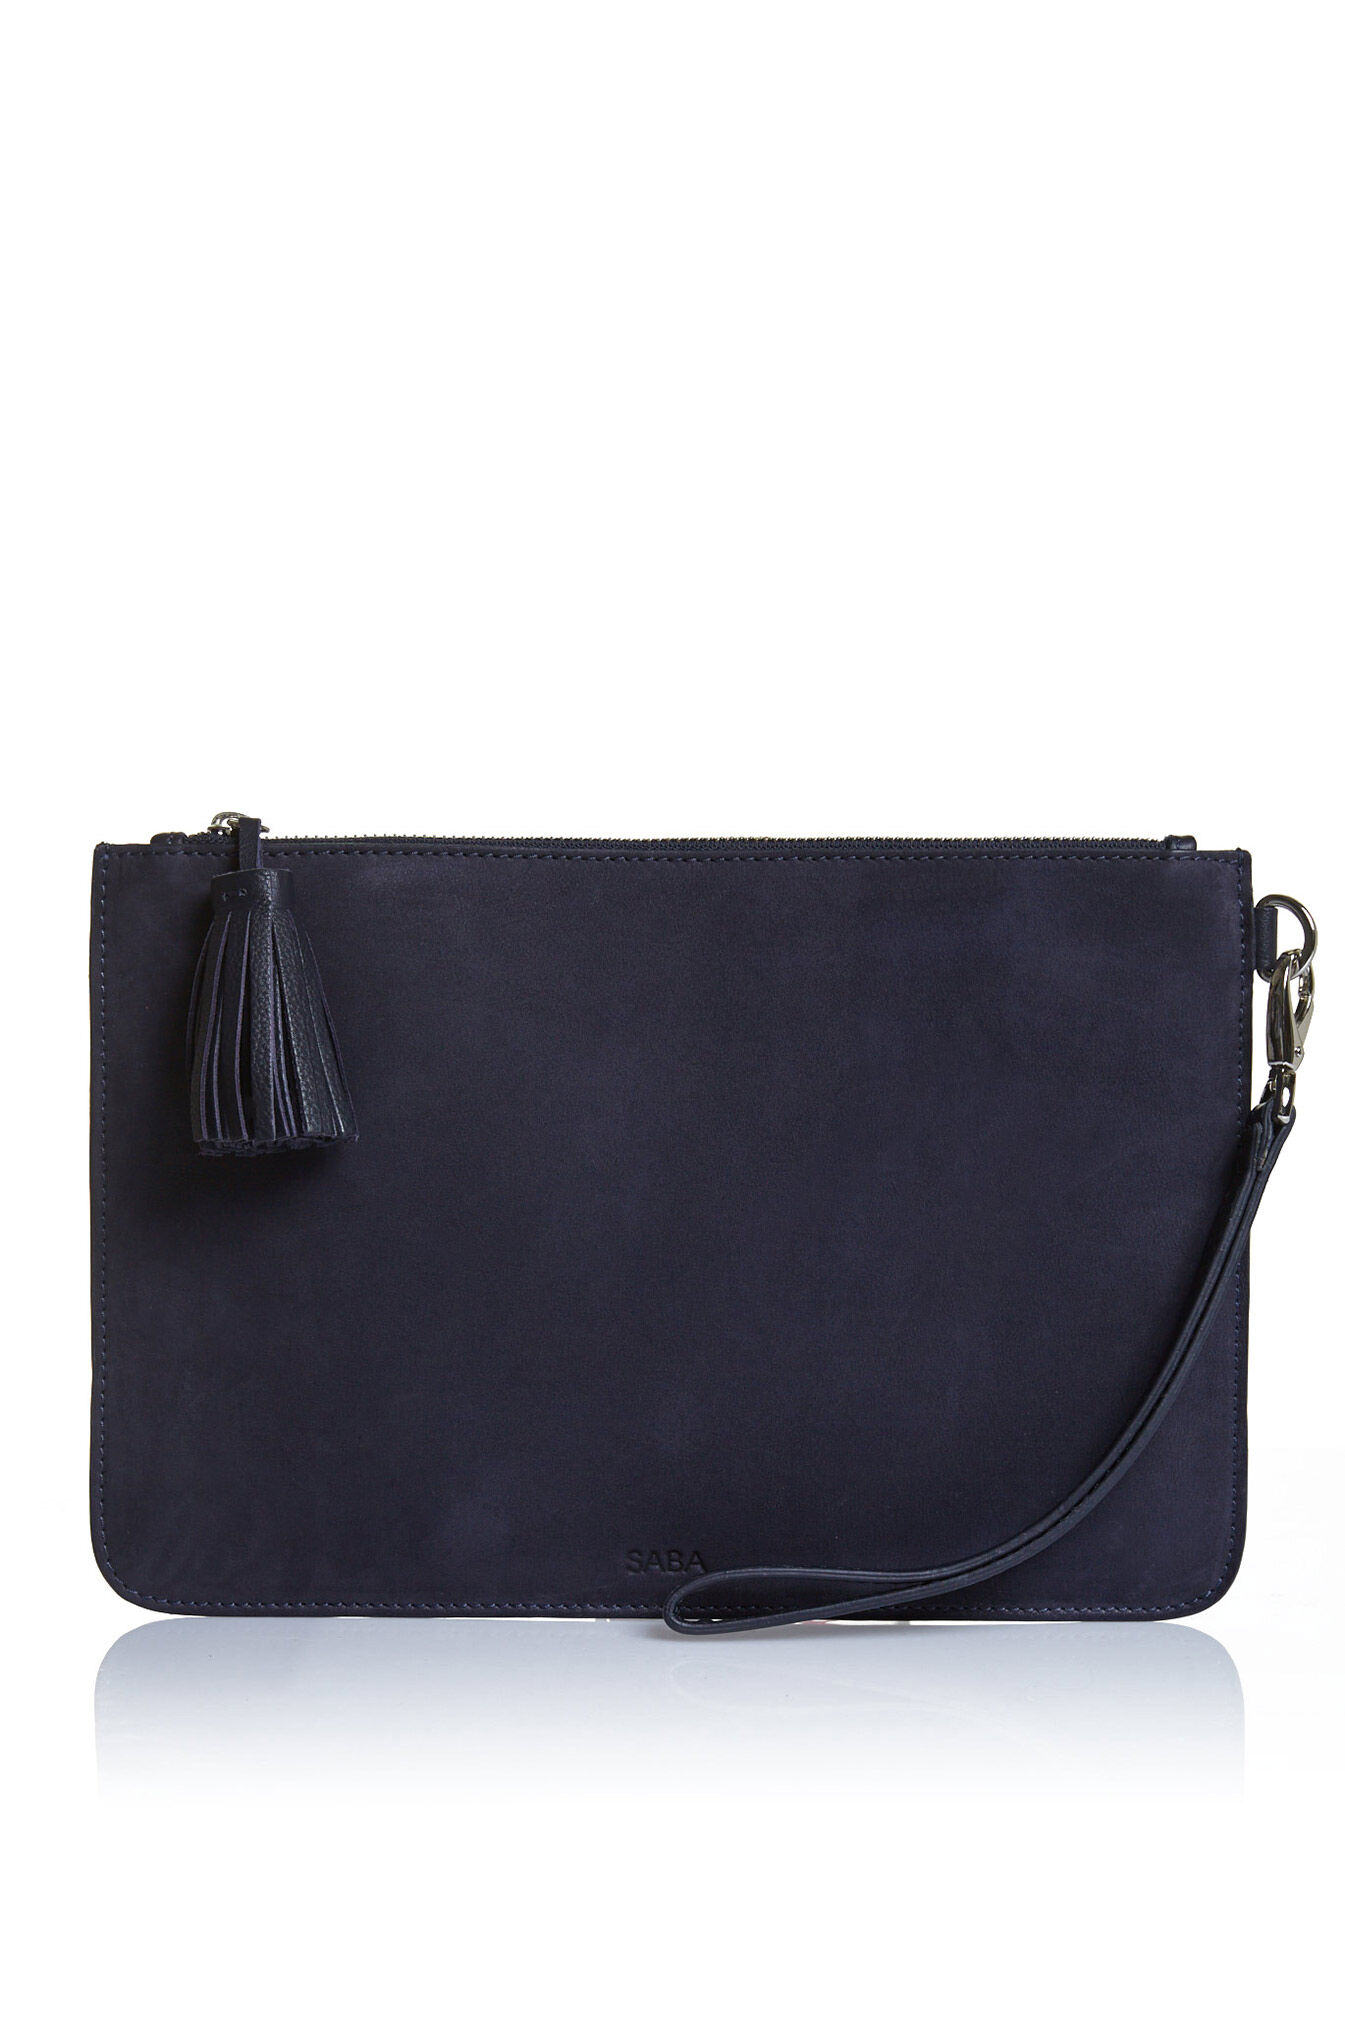 saba female cassi clutch inkonesize